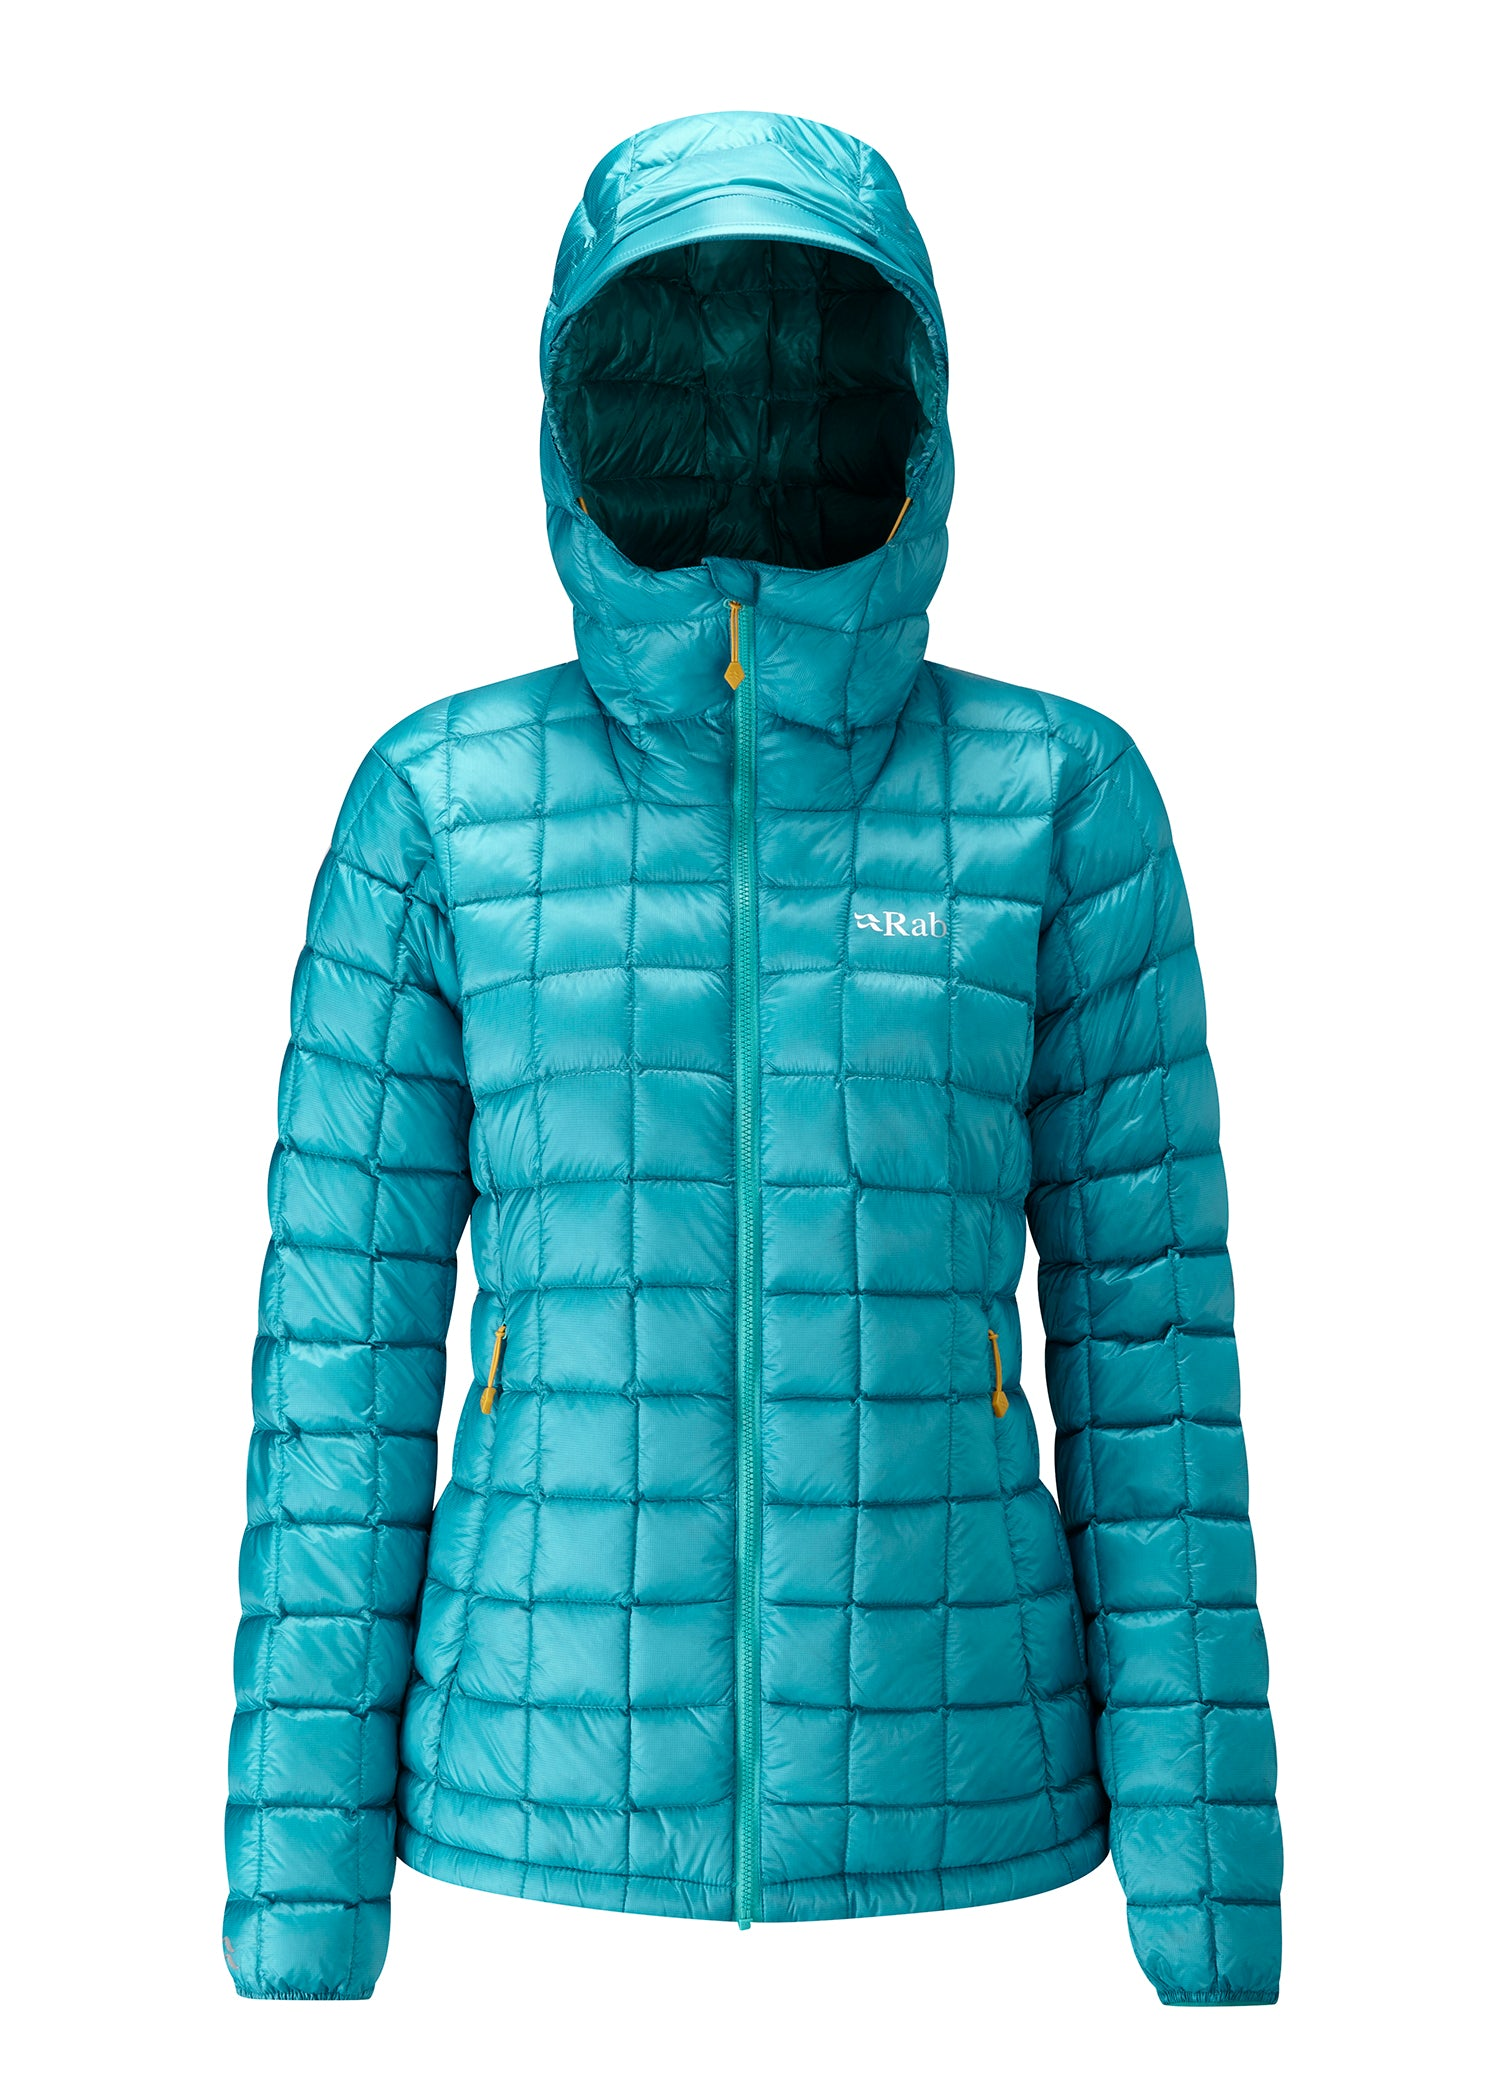 Rab Continuum Lightweight Jacket for Ladies in Seaglass /Serenity